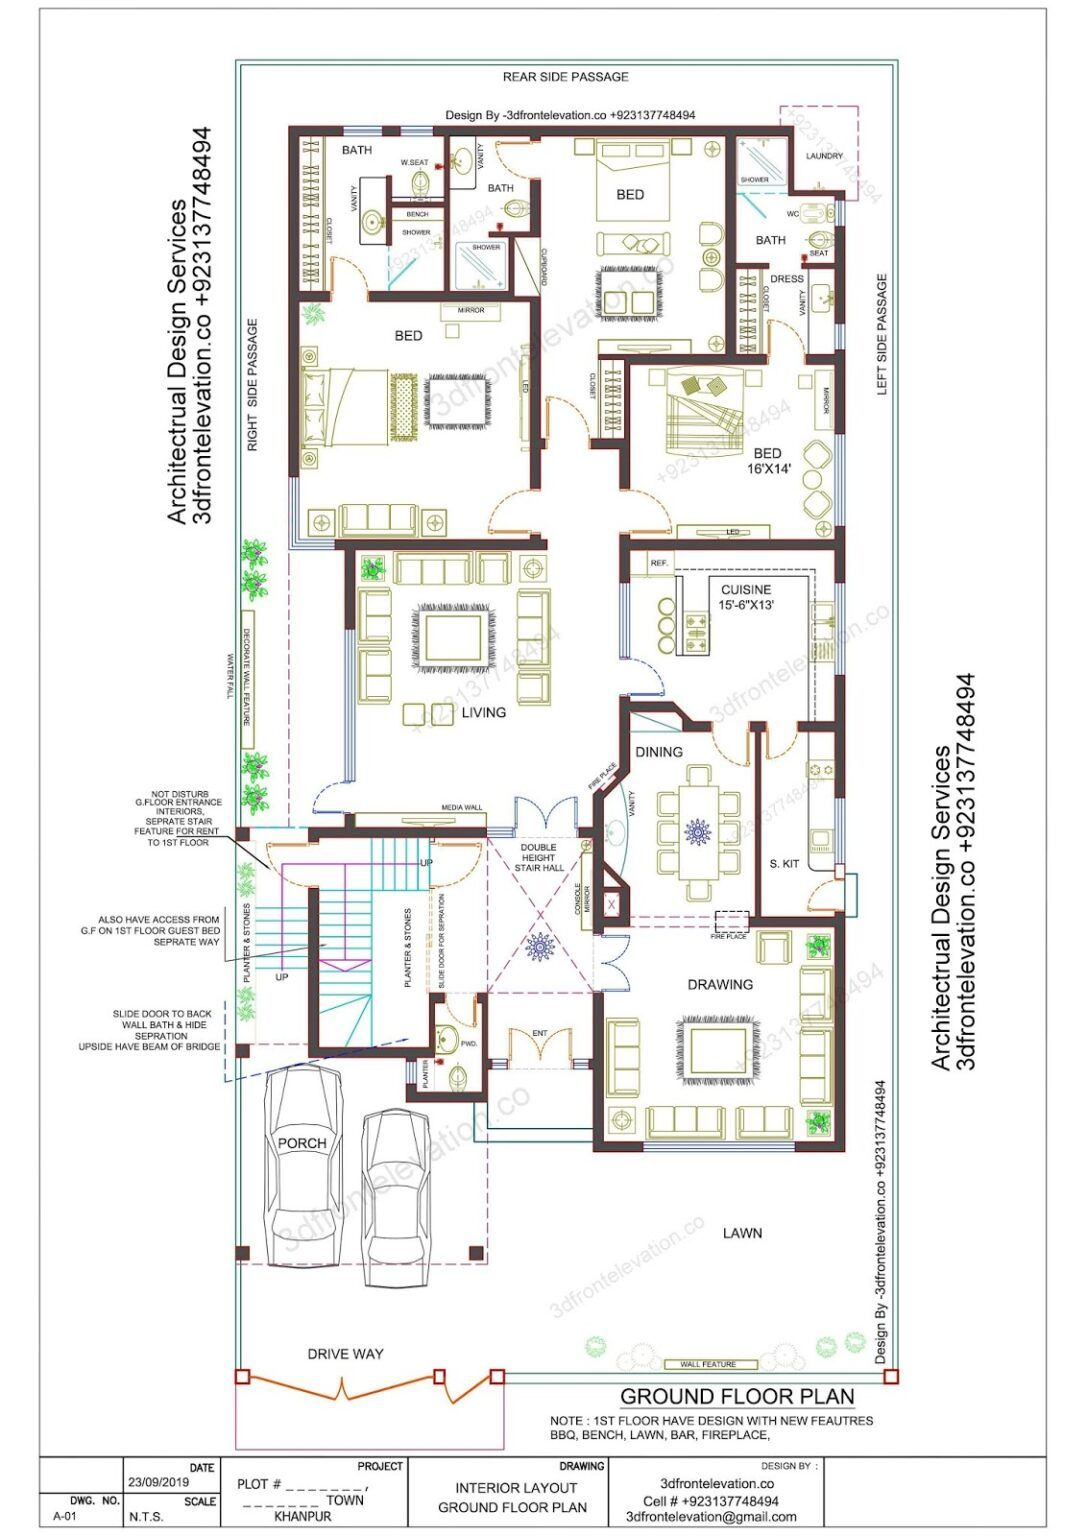 Best Architect How Get Professional Services 3dfrontelevation Co In 2020 Model House Plan House Layout Plans Floor Plan Design